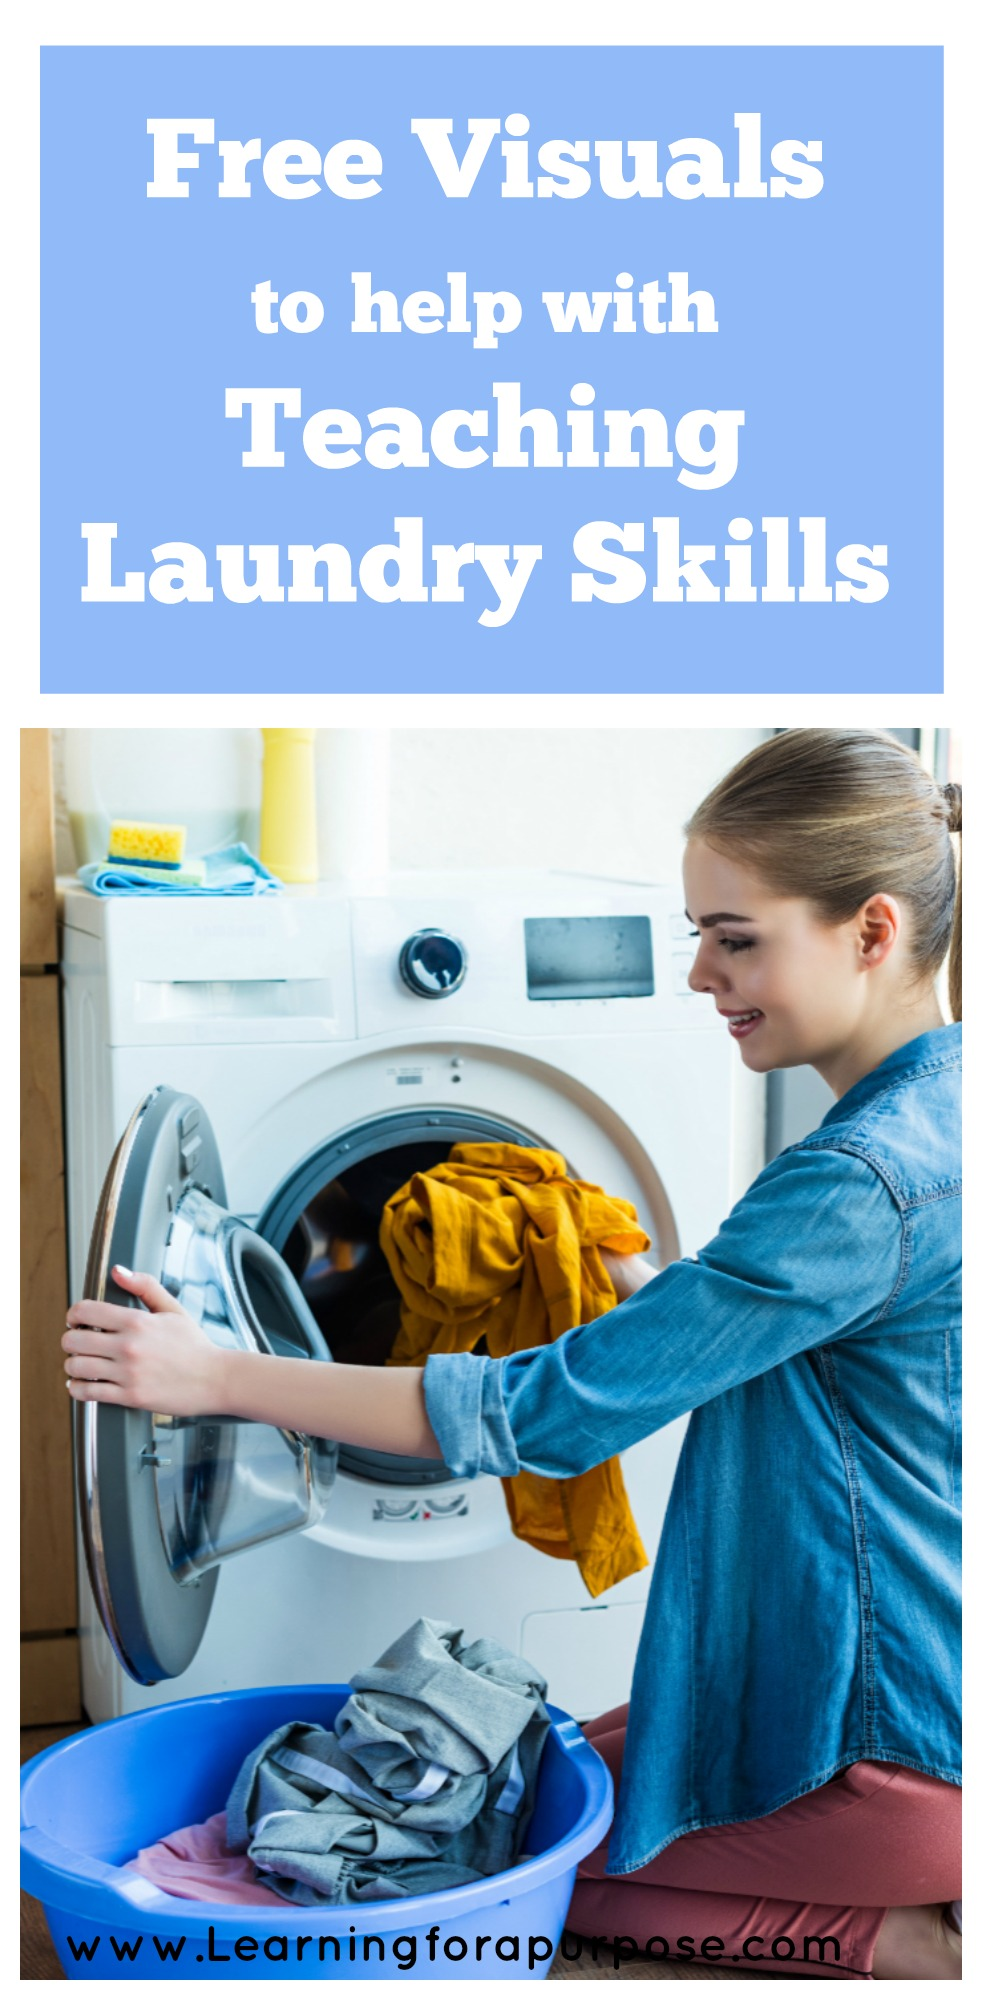 Free Visuals to help with Teaching Laundry Skills